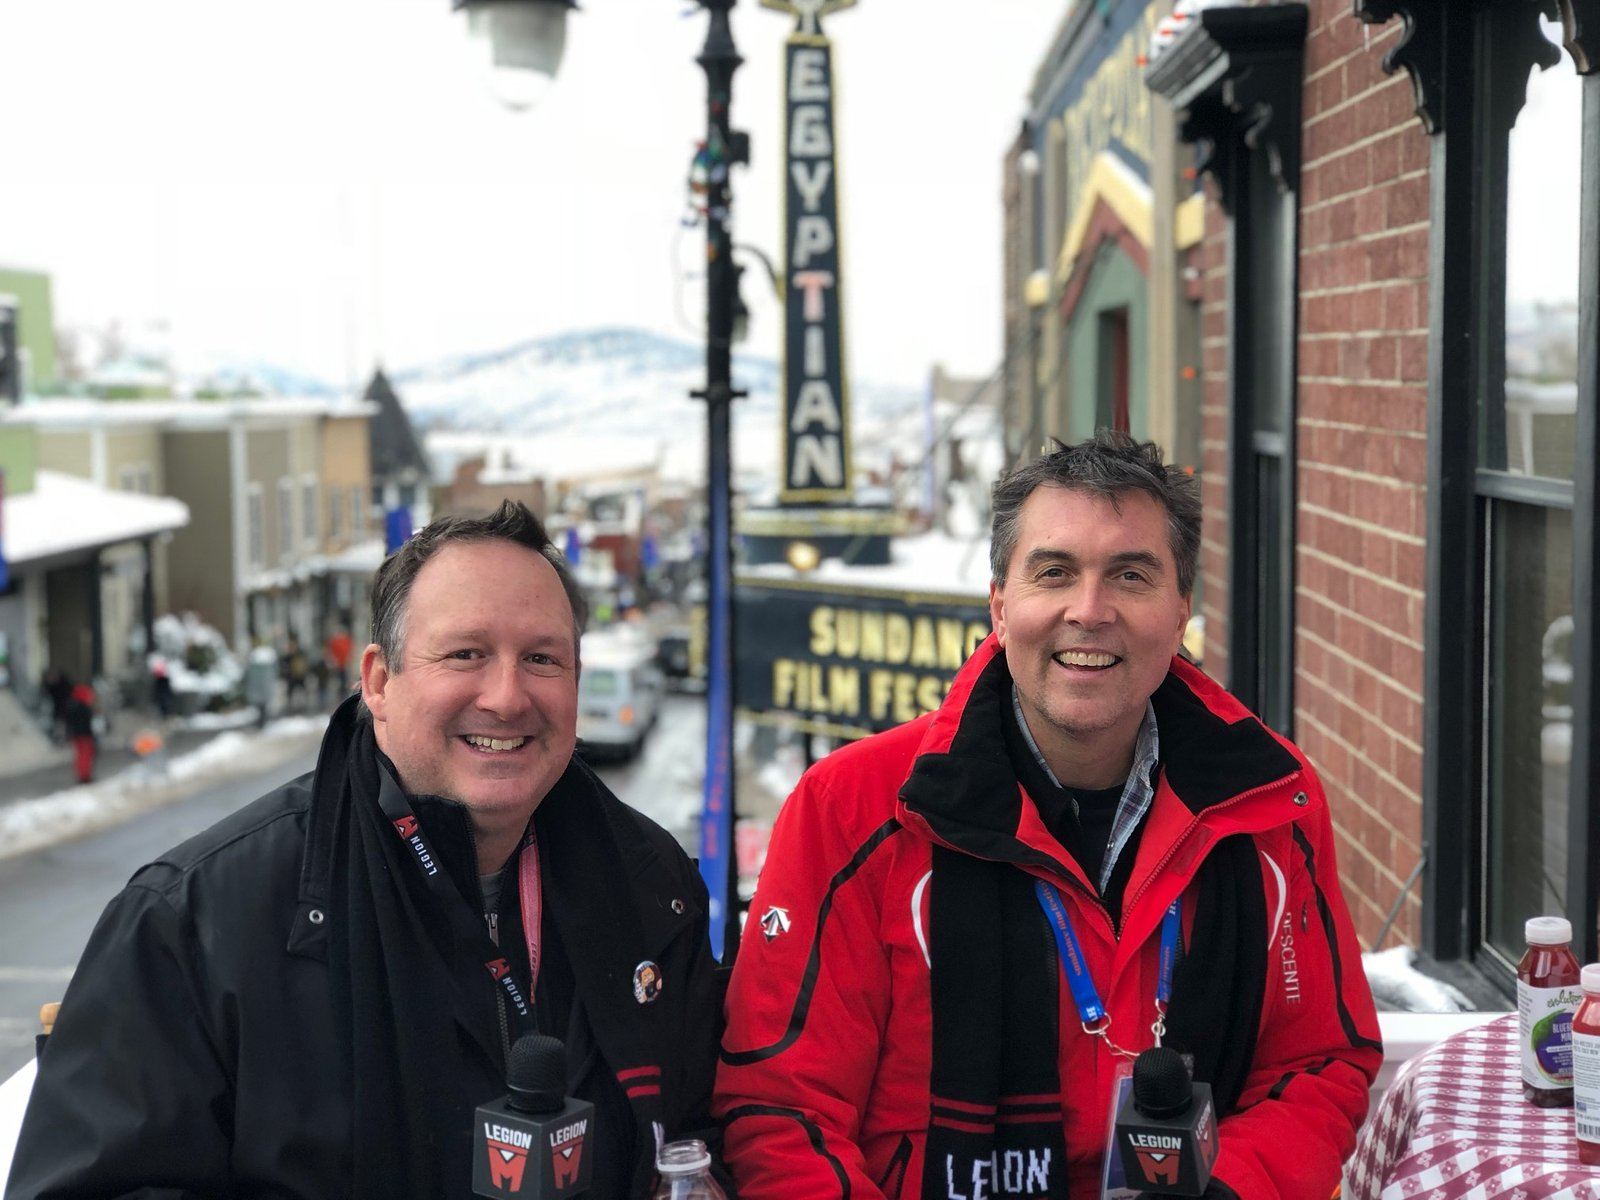 Paul_and_Jeff_at_Sundance.jpg